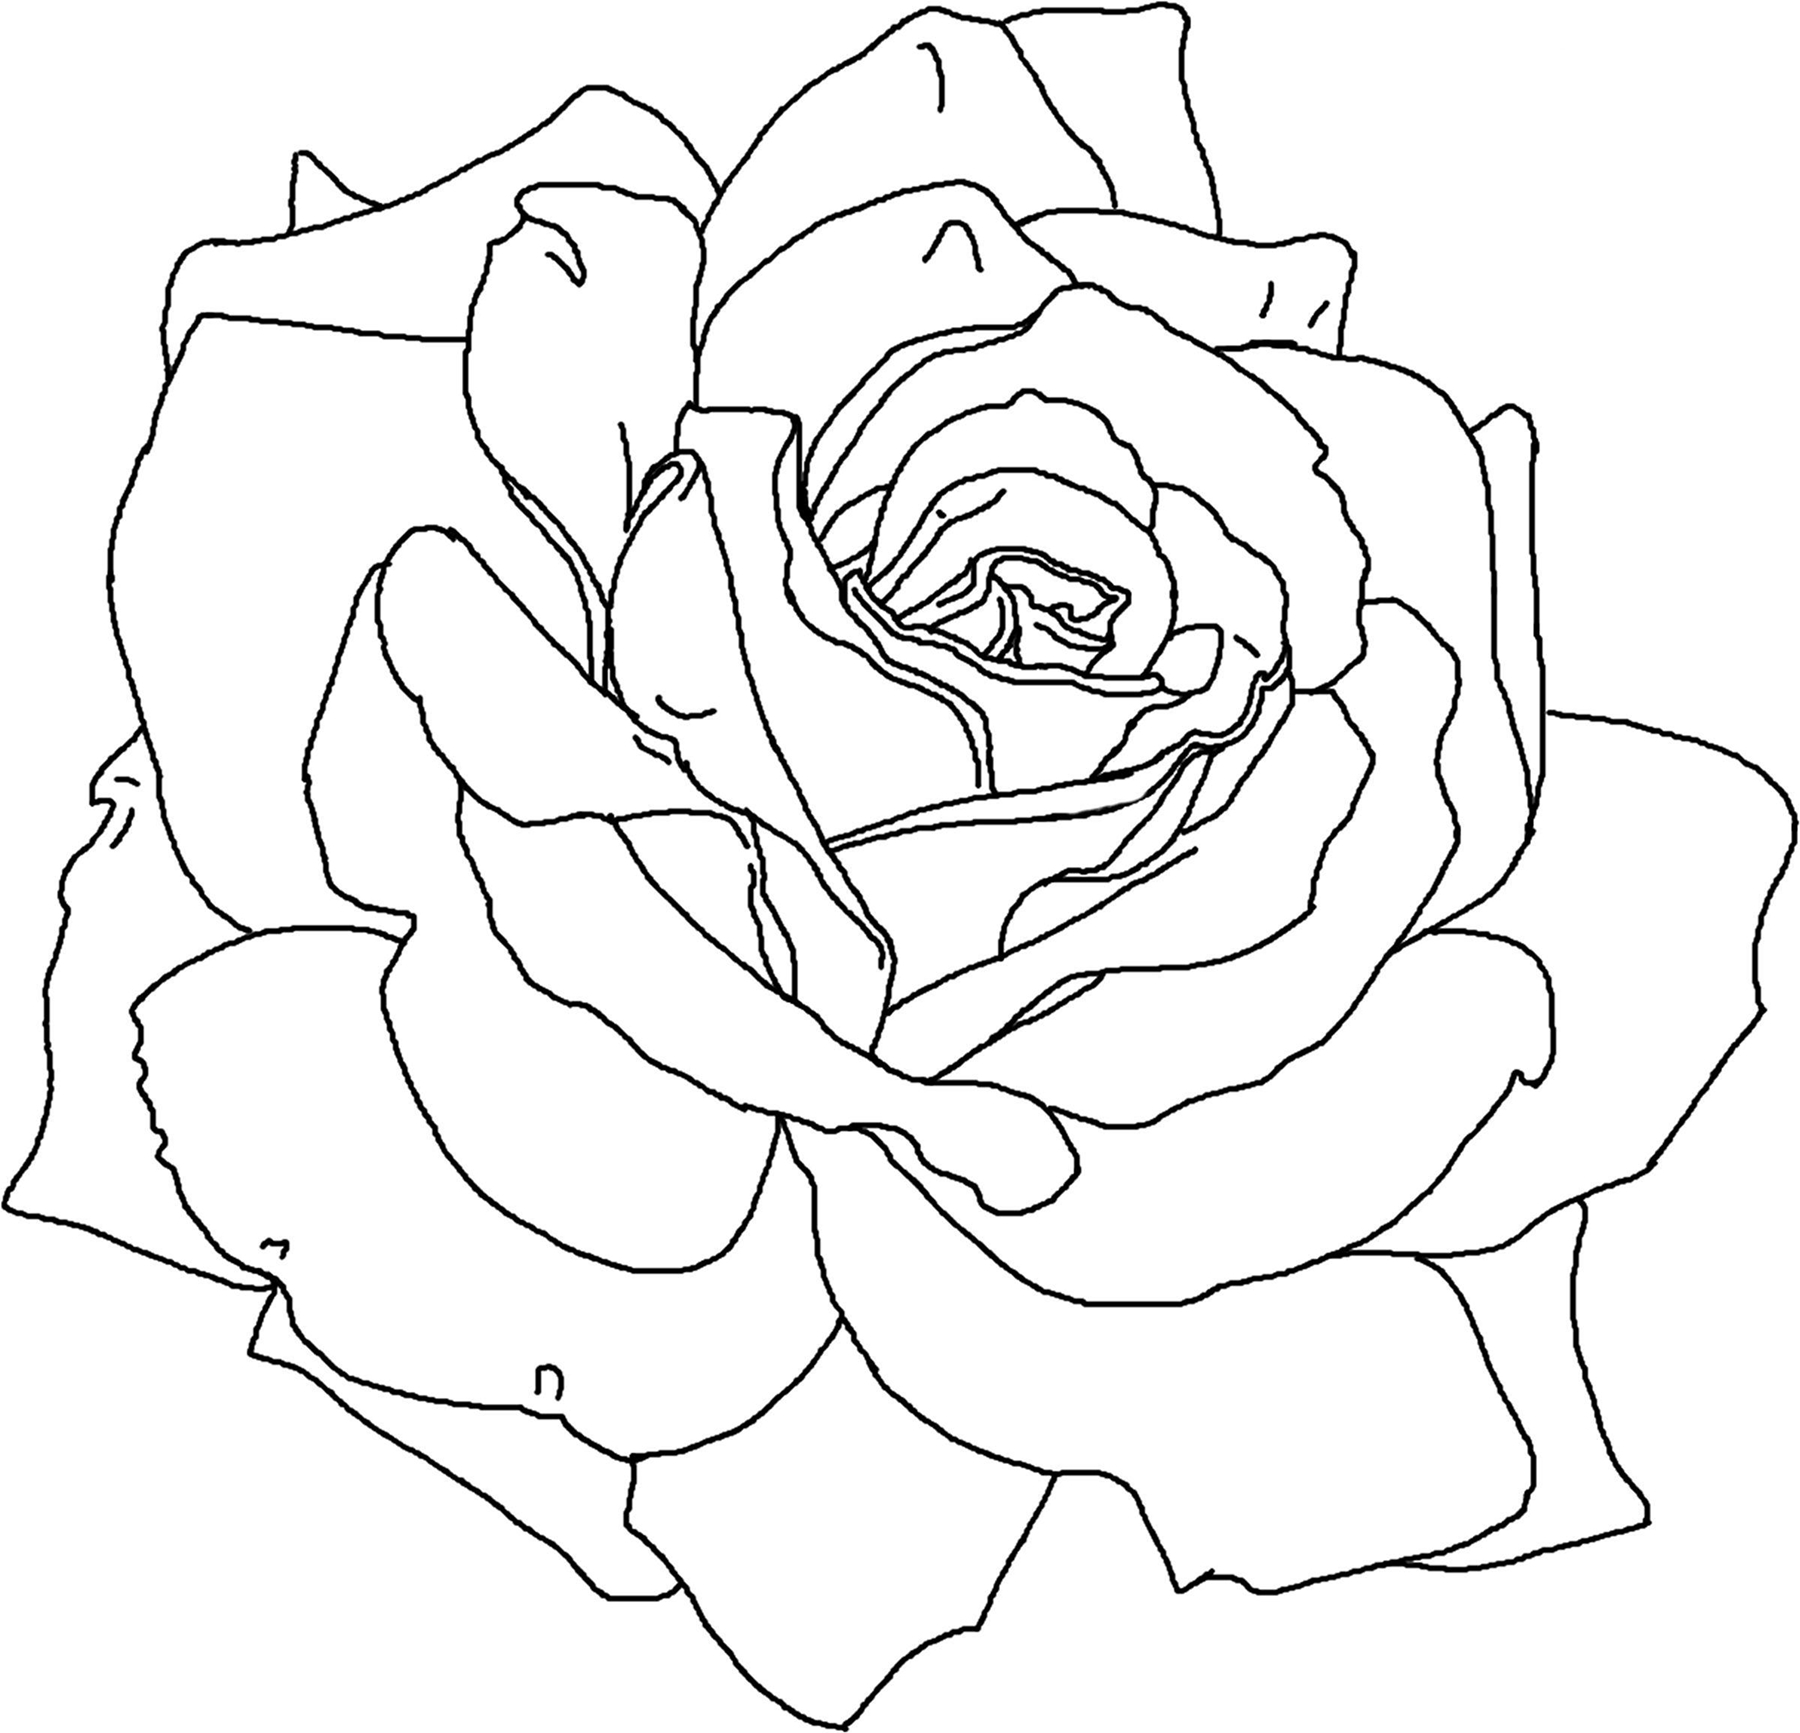 flowers to color and print flower coloring pages for adults best coloring pages for and to print flowers color